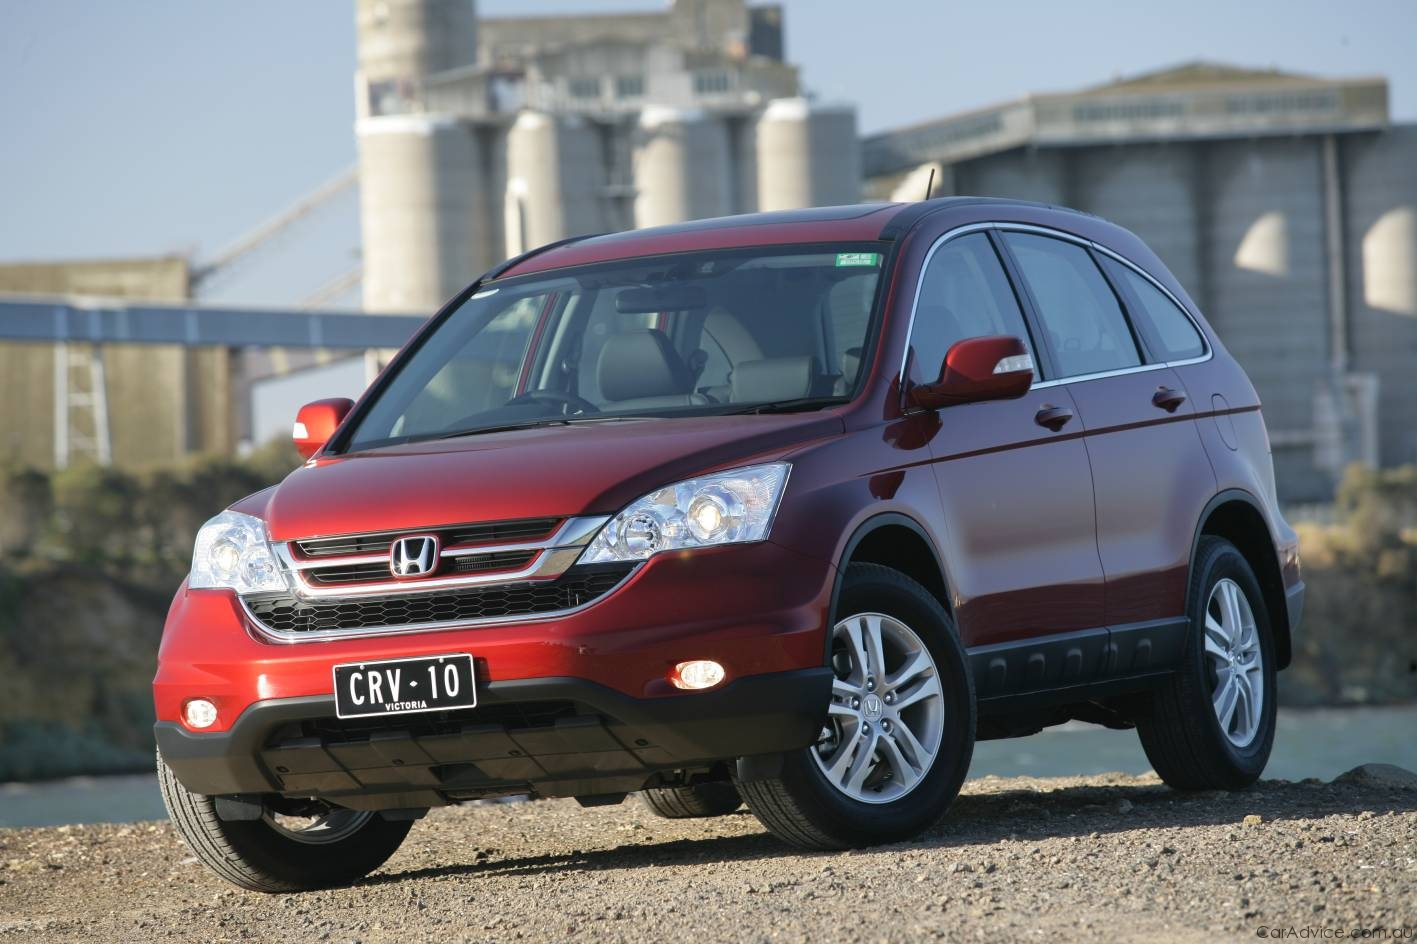 Honda CR-V Review & Road Test - Photos